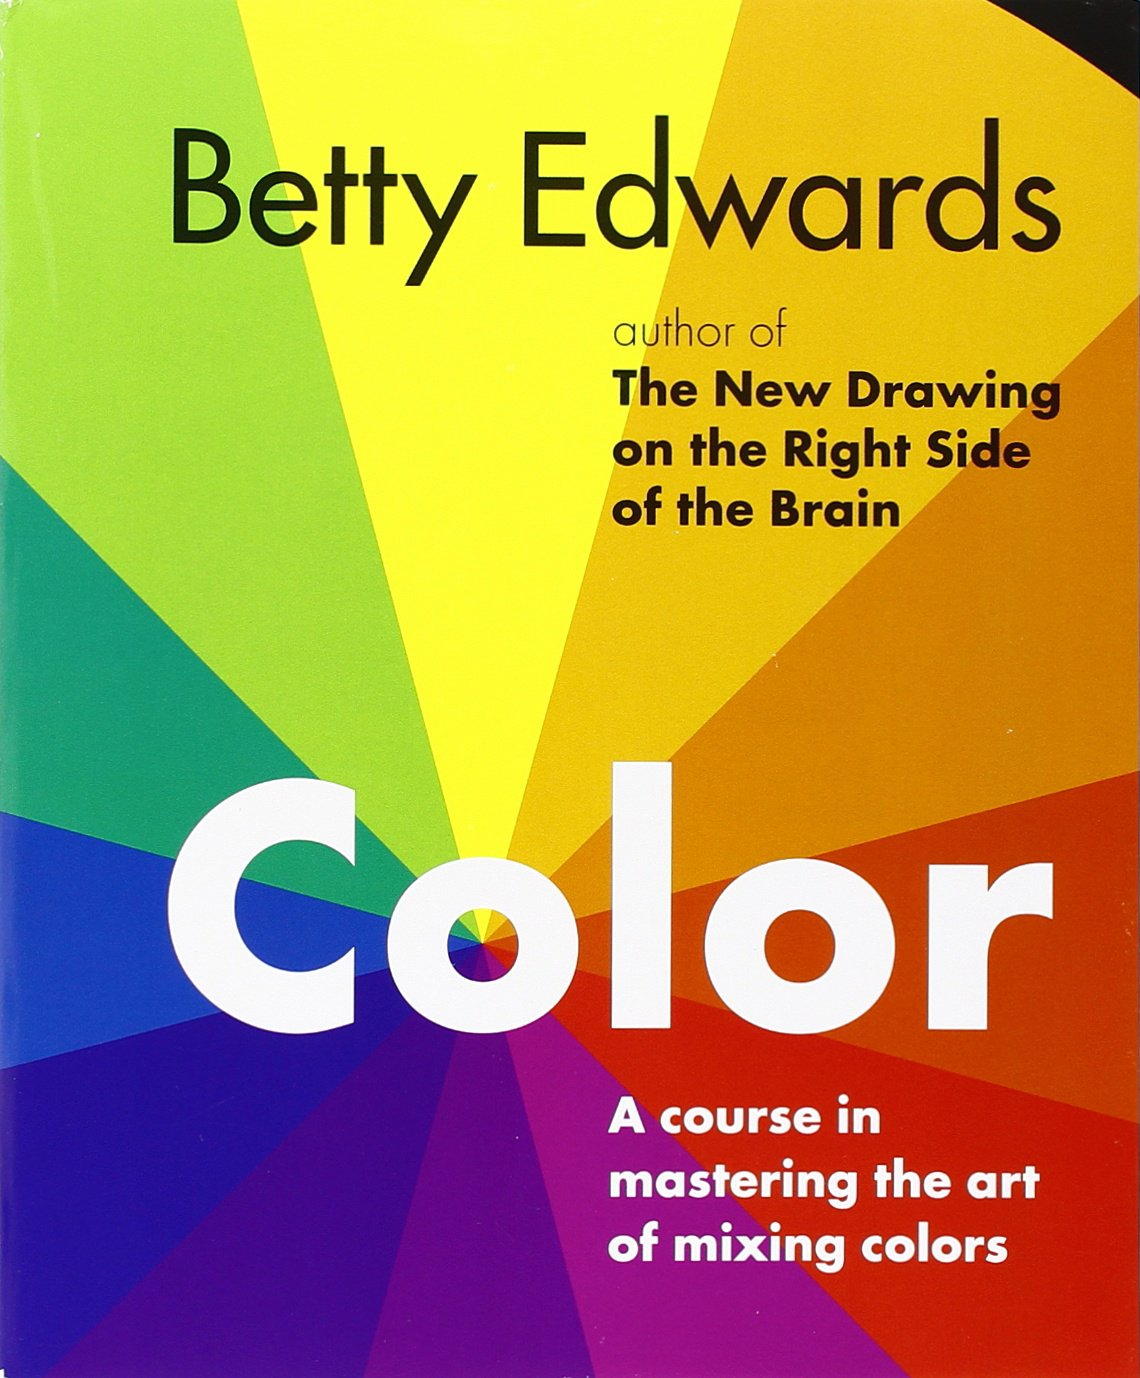 The art of color book - Color By Betty Edwards A Course In Mastering The Art Of Mixing Colors Betty Edwards 9781585422197 Amazon Com Books